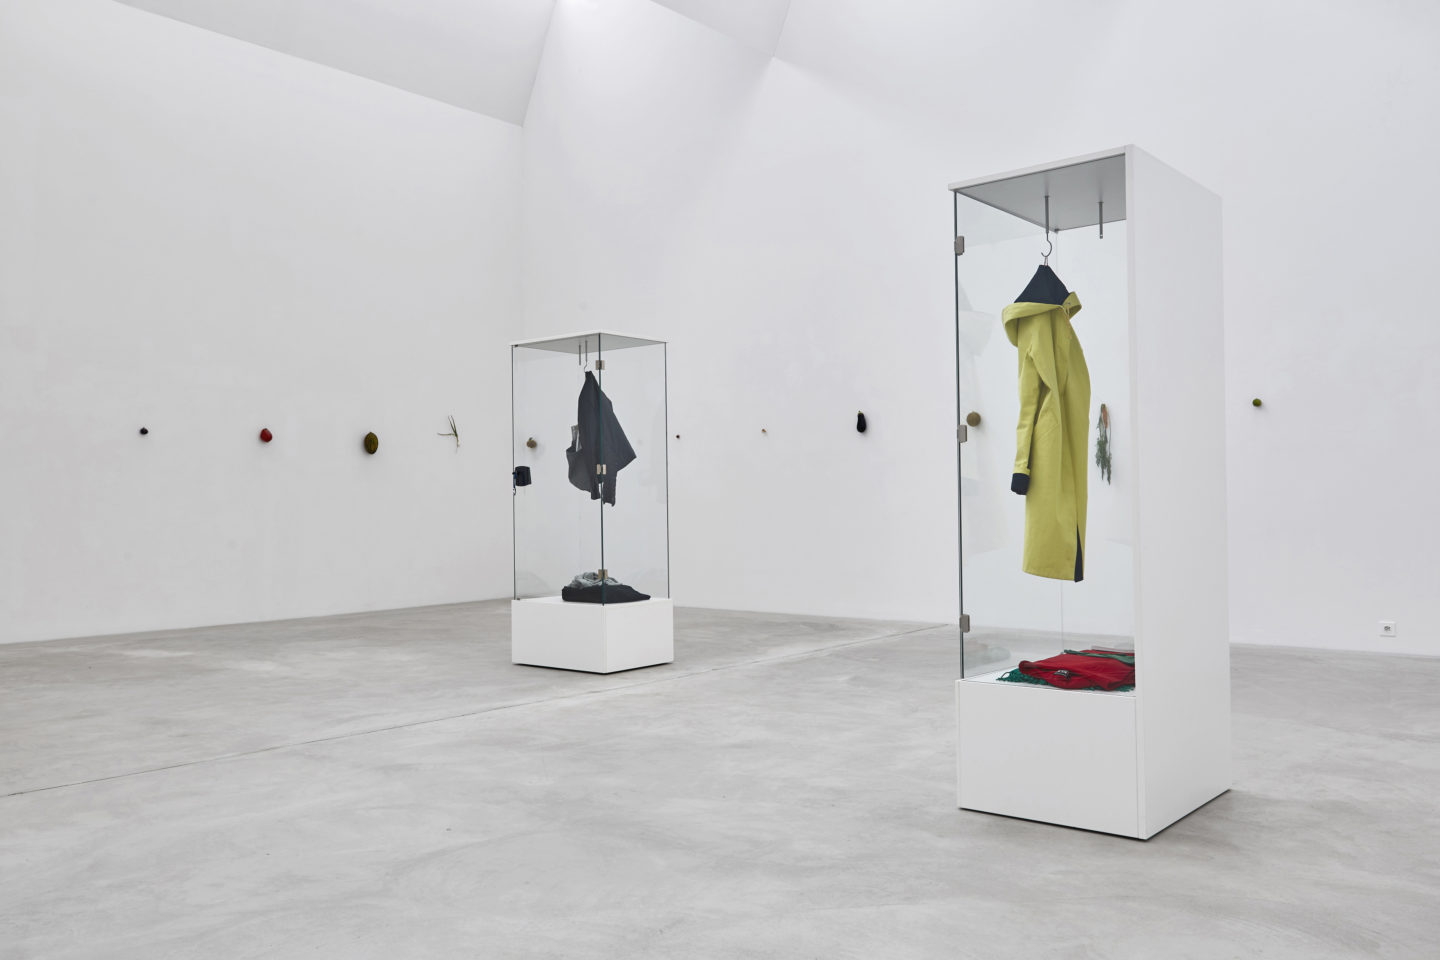 Exhibition View Karin Sander Soloshow «view on Identities on Display, 2013» at Kunstmuseum Winterthur / Photo: Lucas Ziegler / Courtesy: the artist and Esther Schipper, Berlin in cooperation with Holzer Kobler Architekturen